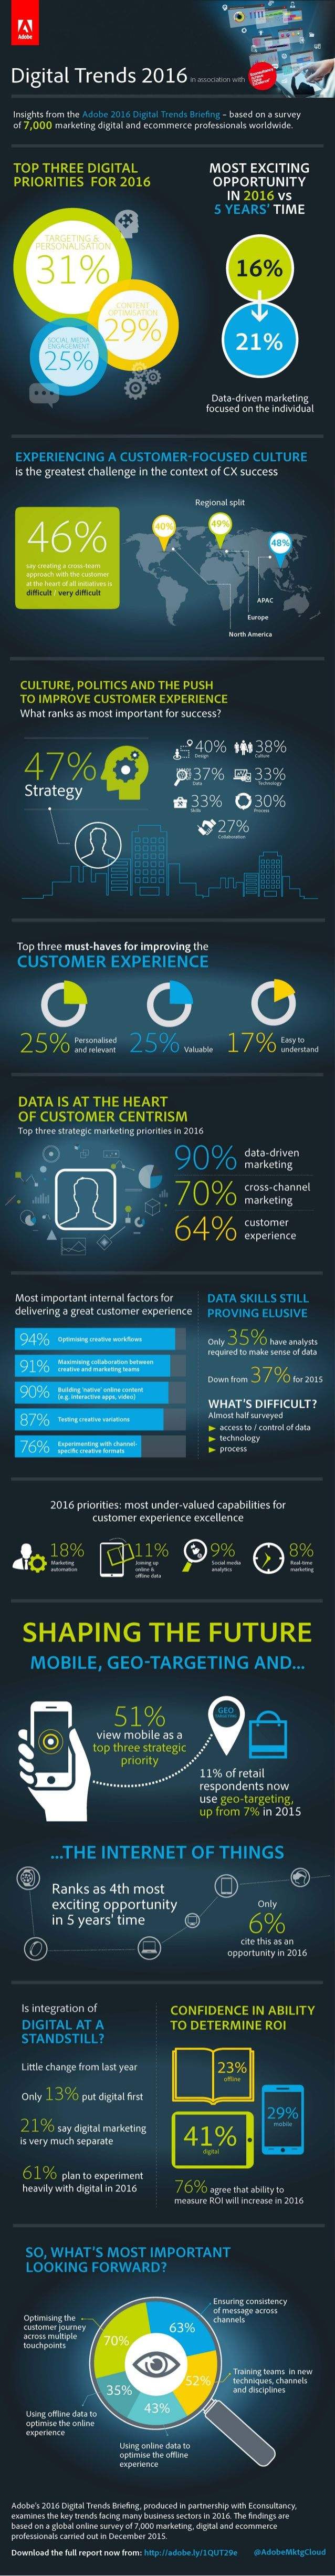 The Digital Trends 2016 Infographic highlights findings from Adobe's 2016 Digital Trends Briefing